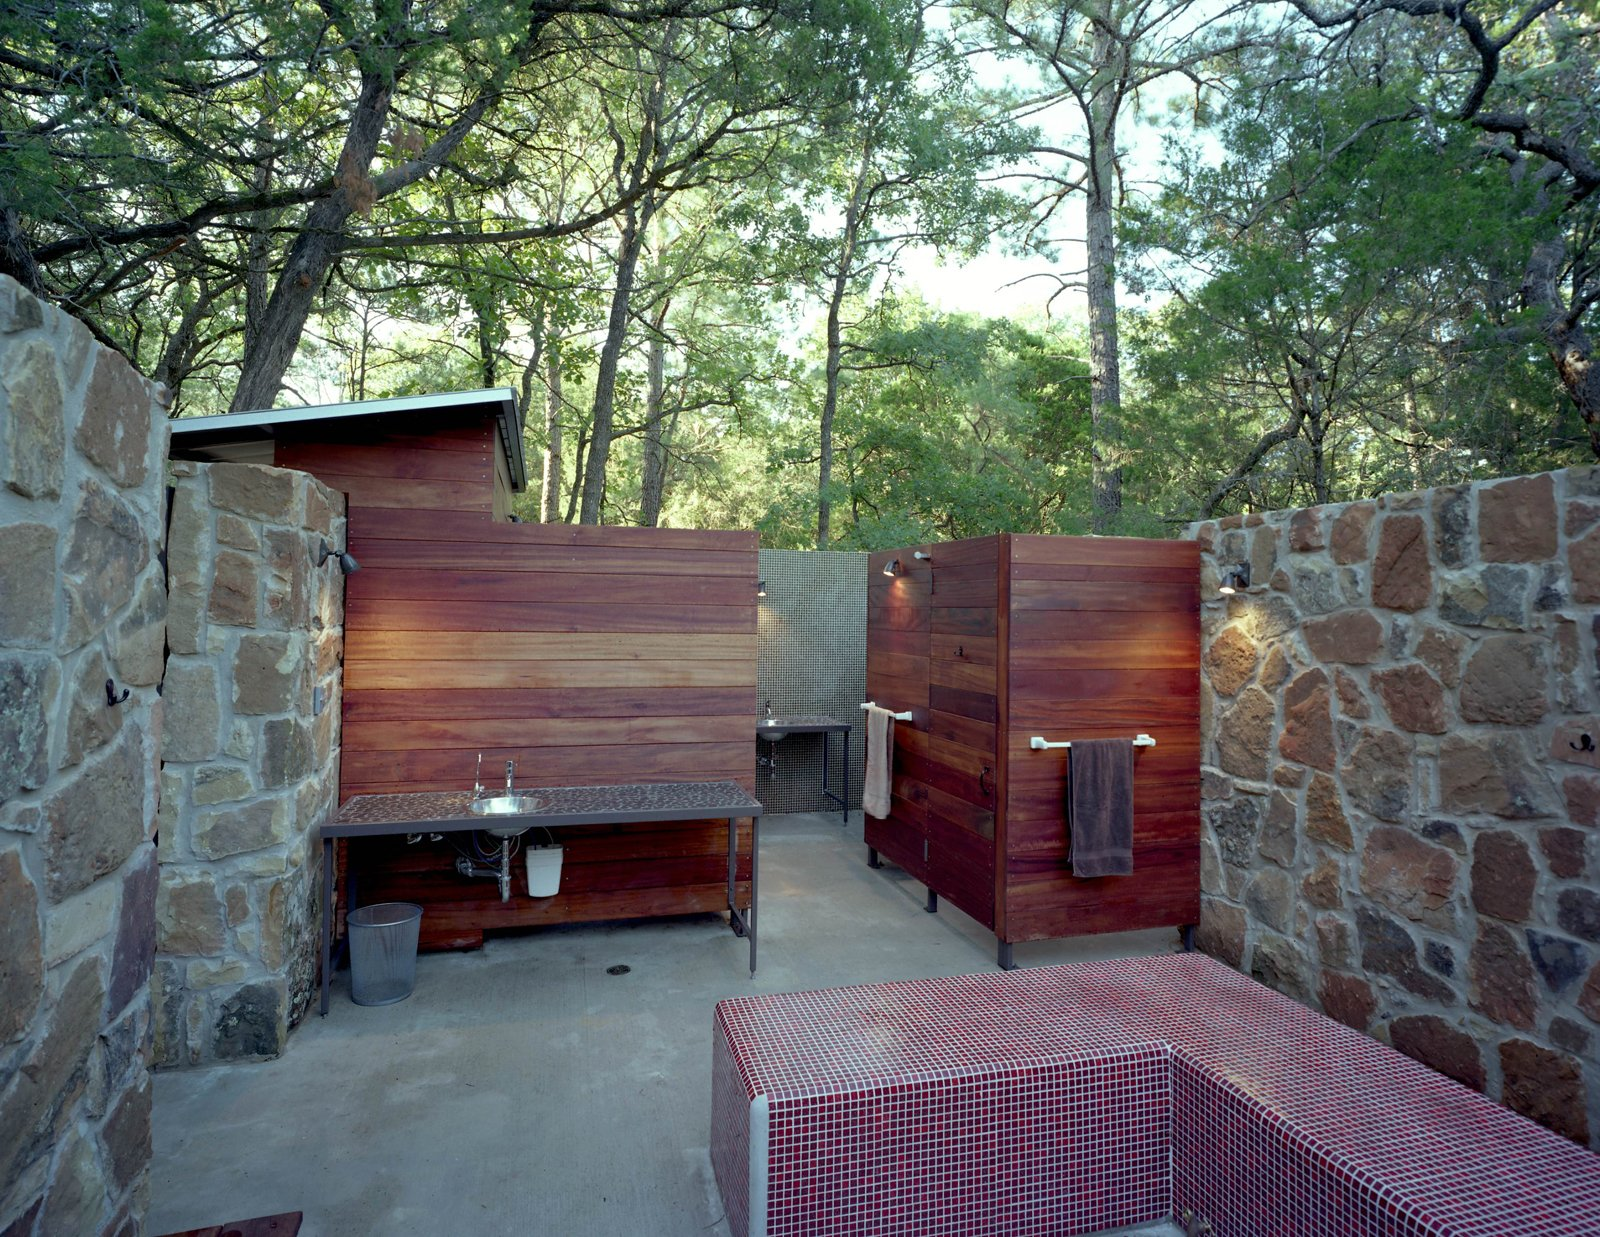 With its Brazilian Tigerwood enclosures, the outdoor bathhouse, which includes showers, sinks and dressing areas, references the nearby bunkhouse.  Texas Bunkhouse by Erika Heet